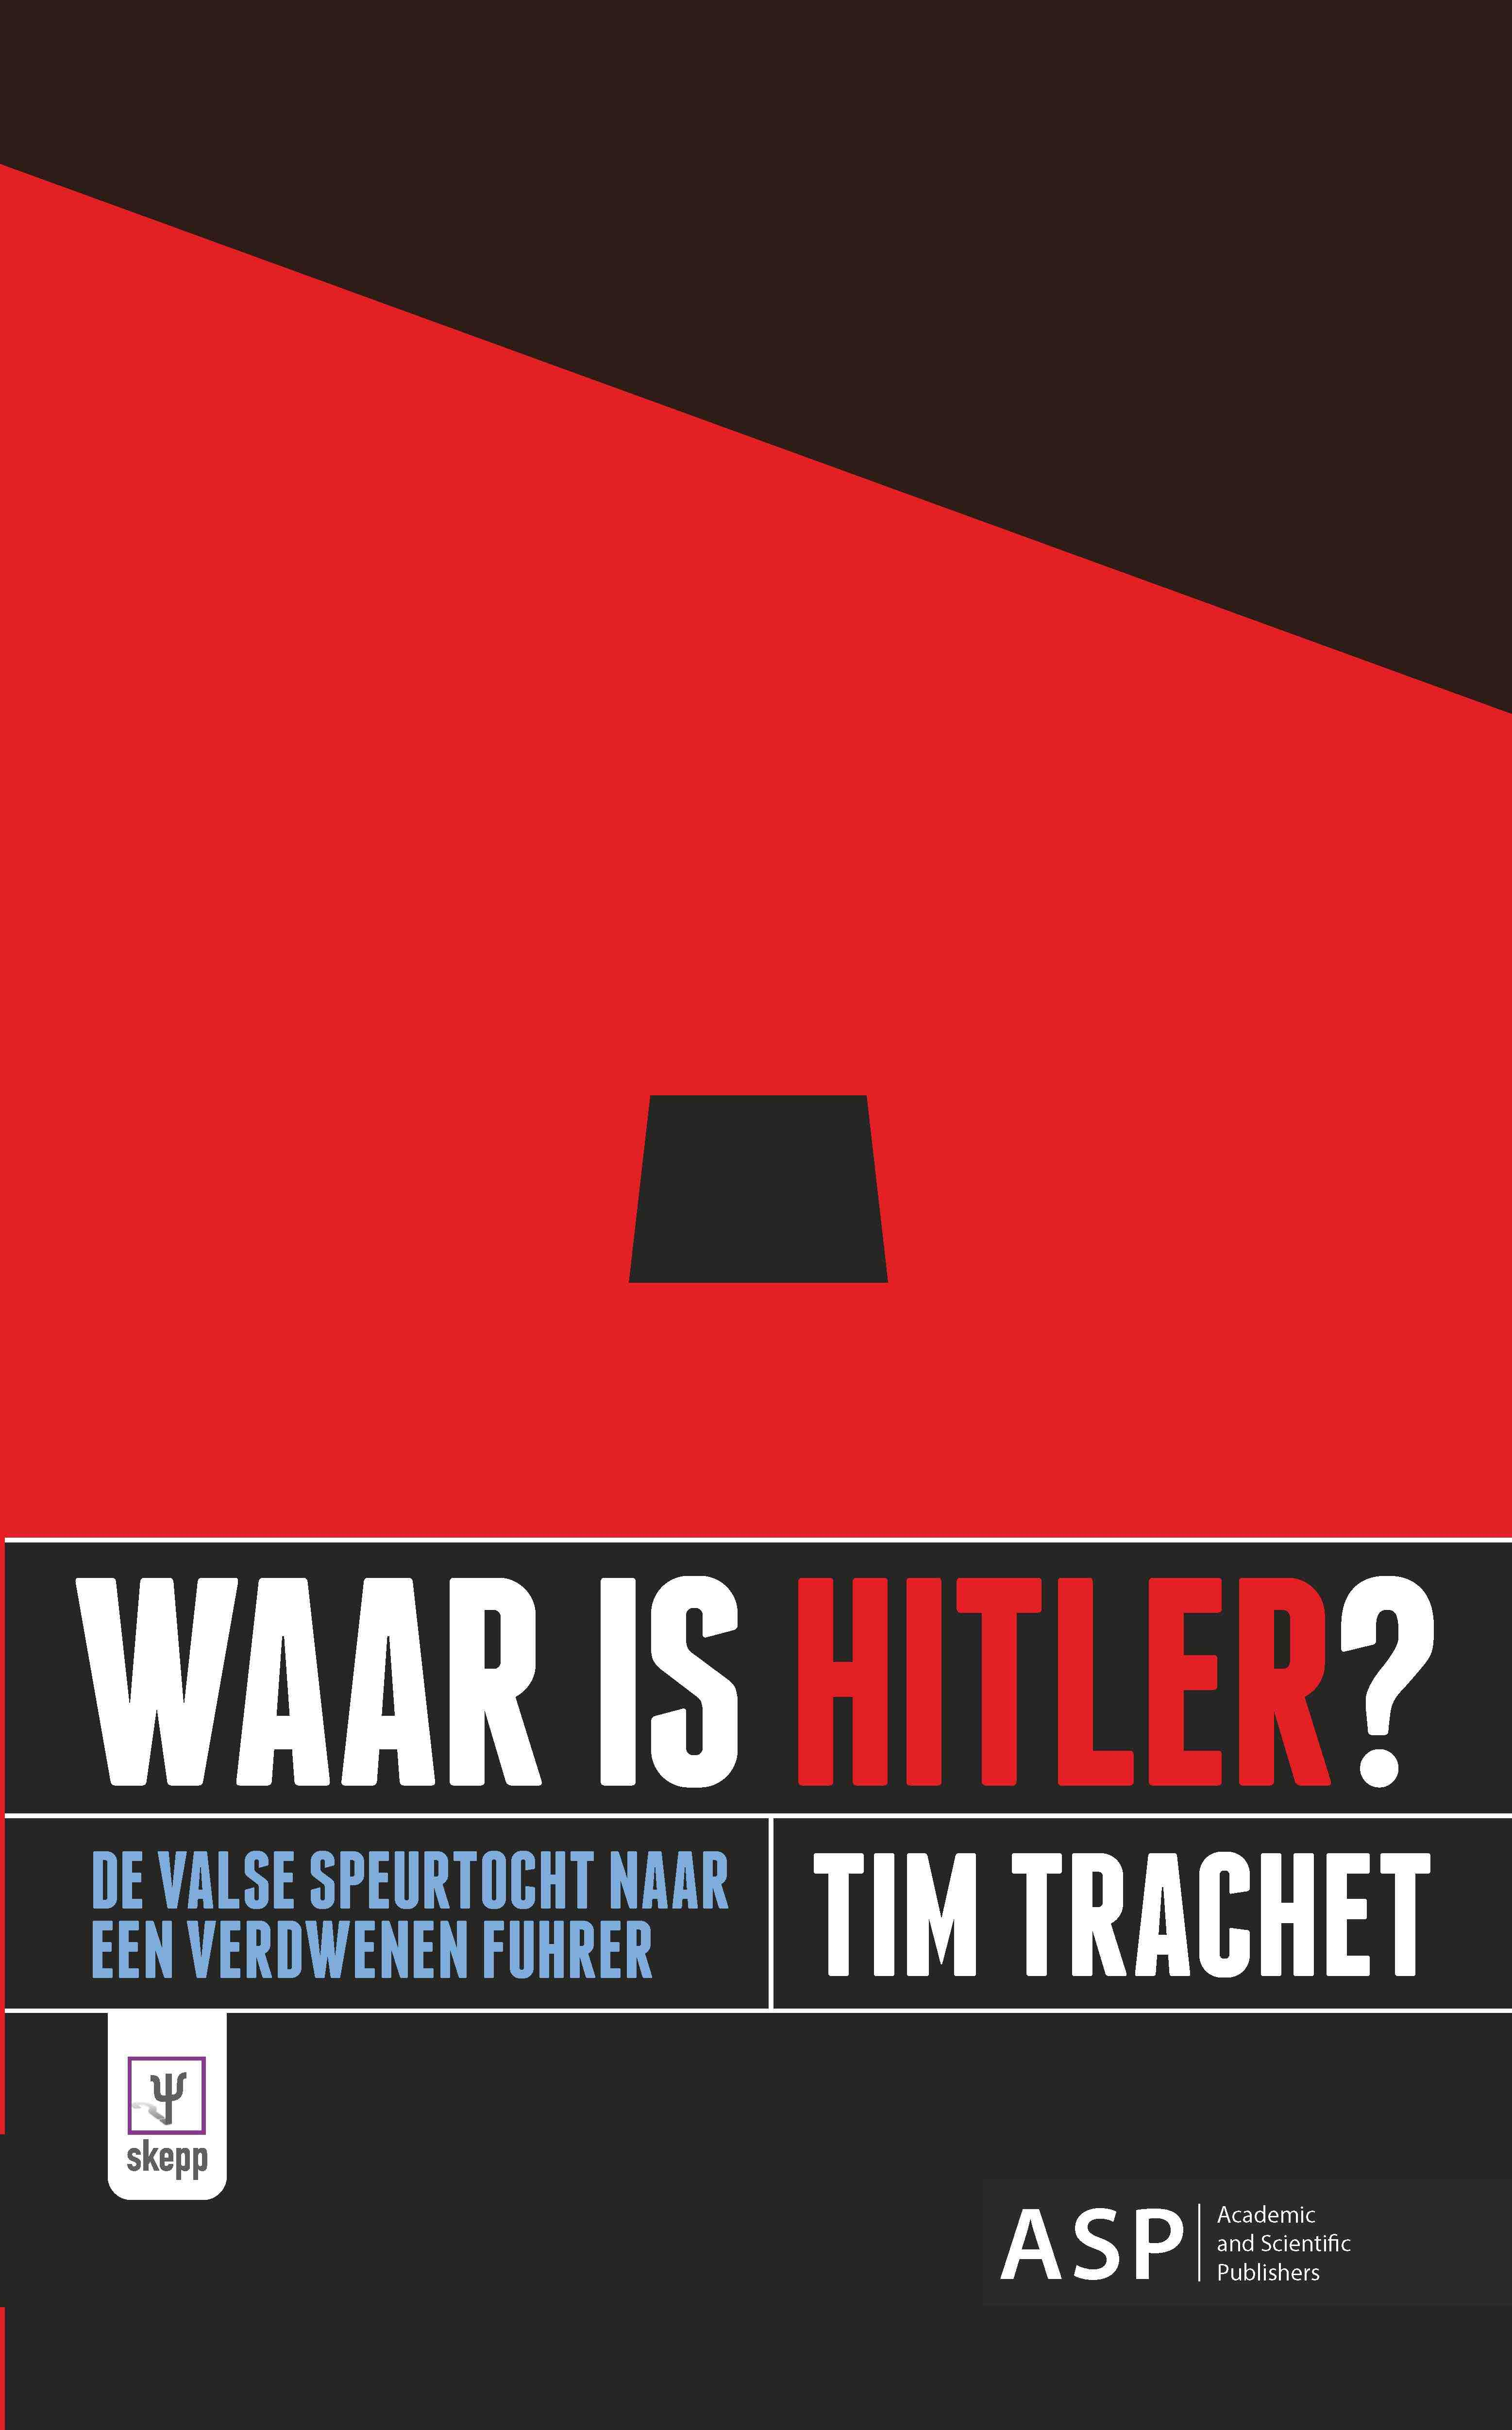 WAAR IS HITLER?